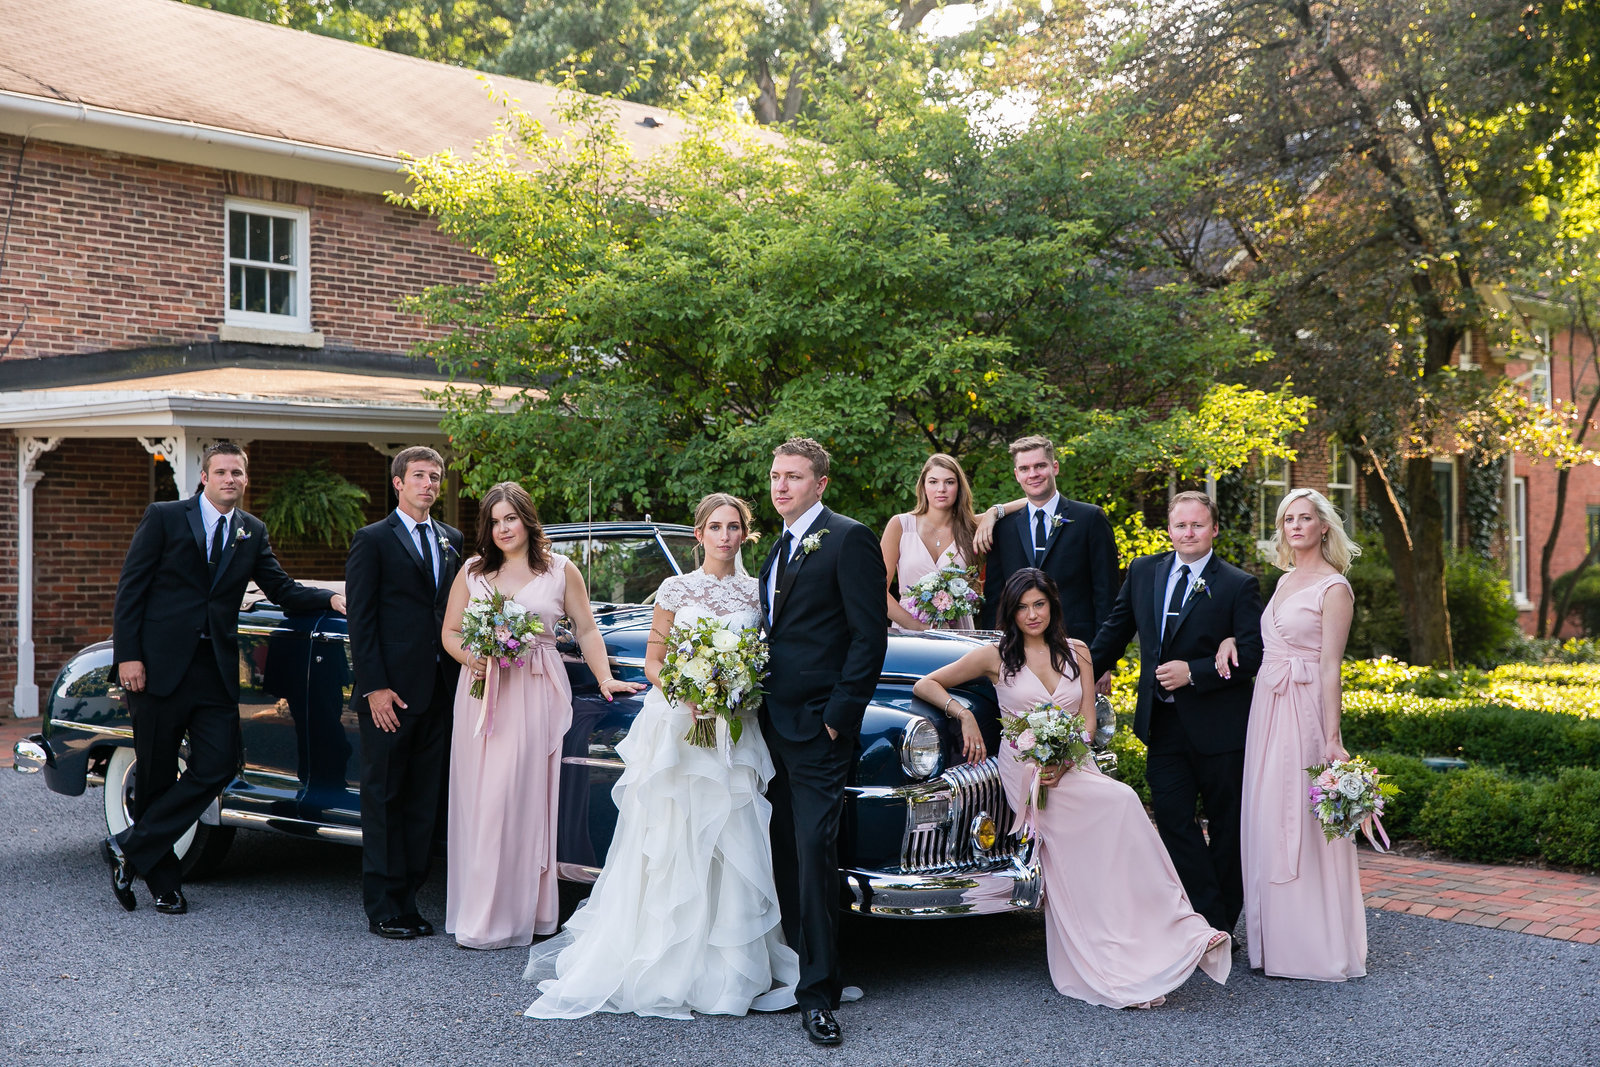 Anne Marshall wedding-Emilia Jane Photography-279